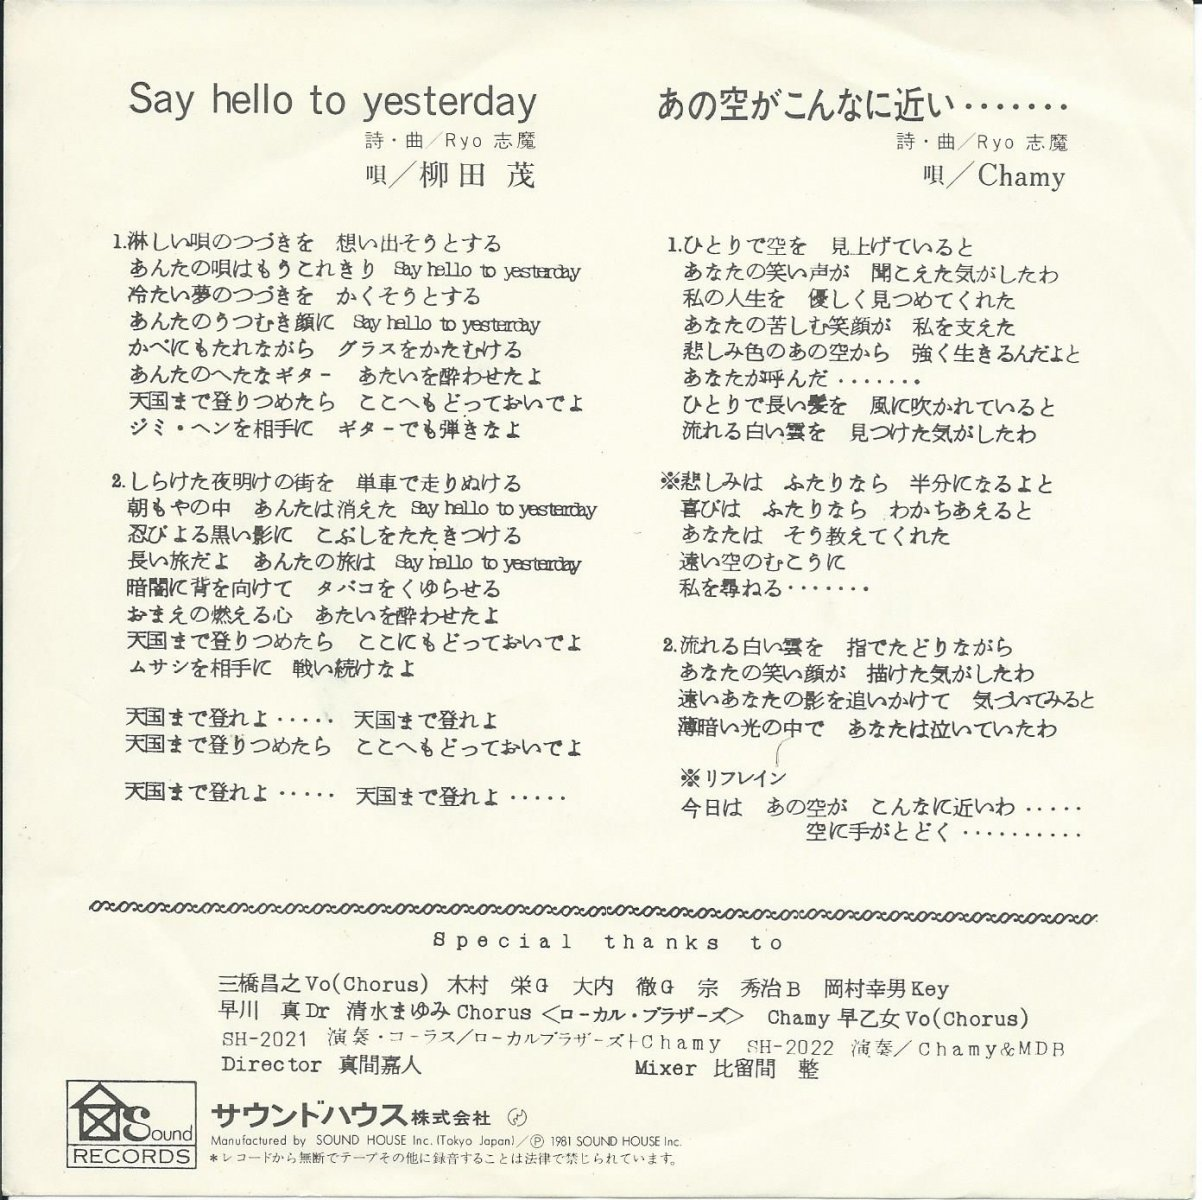 柳田茂 SHIGERU YANAGIDA / SAY HELLO TO YESTERDAY (7